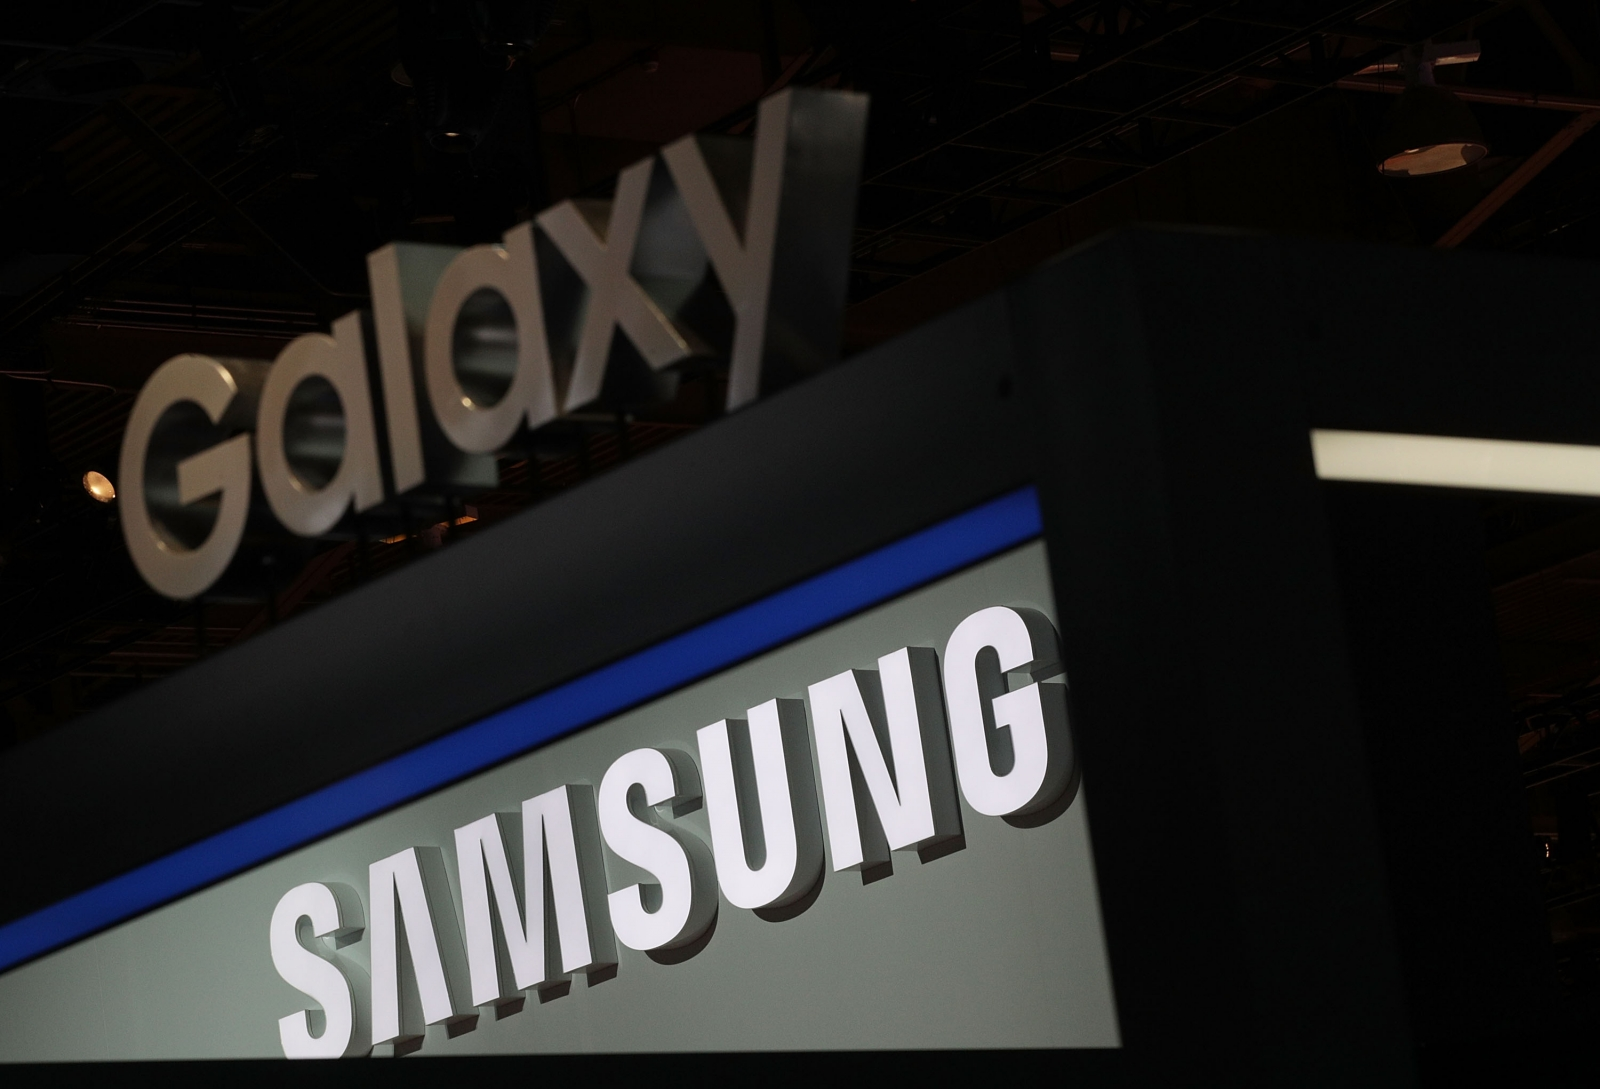 Samsung hopeful with Galaxy S8